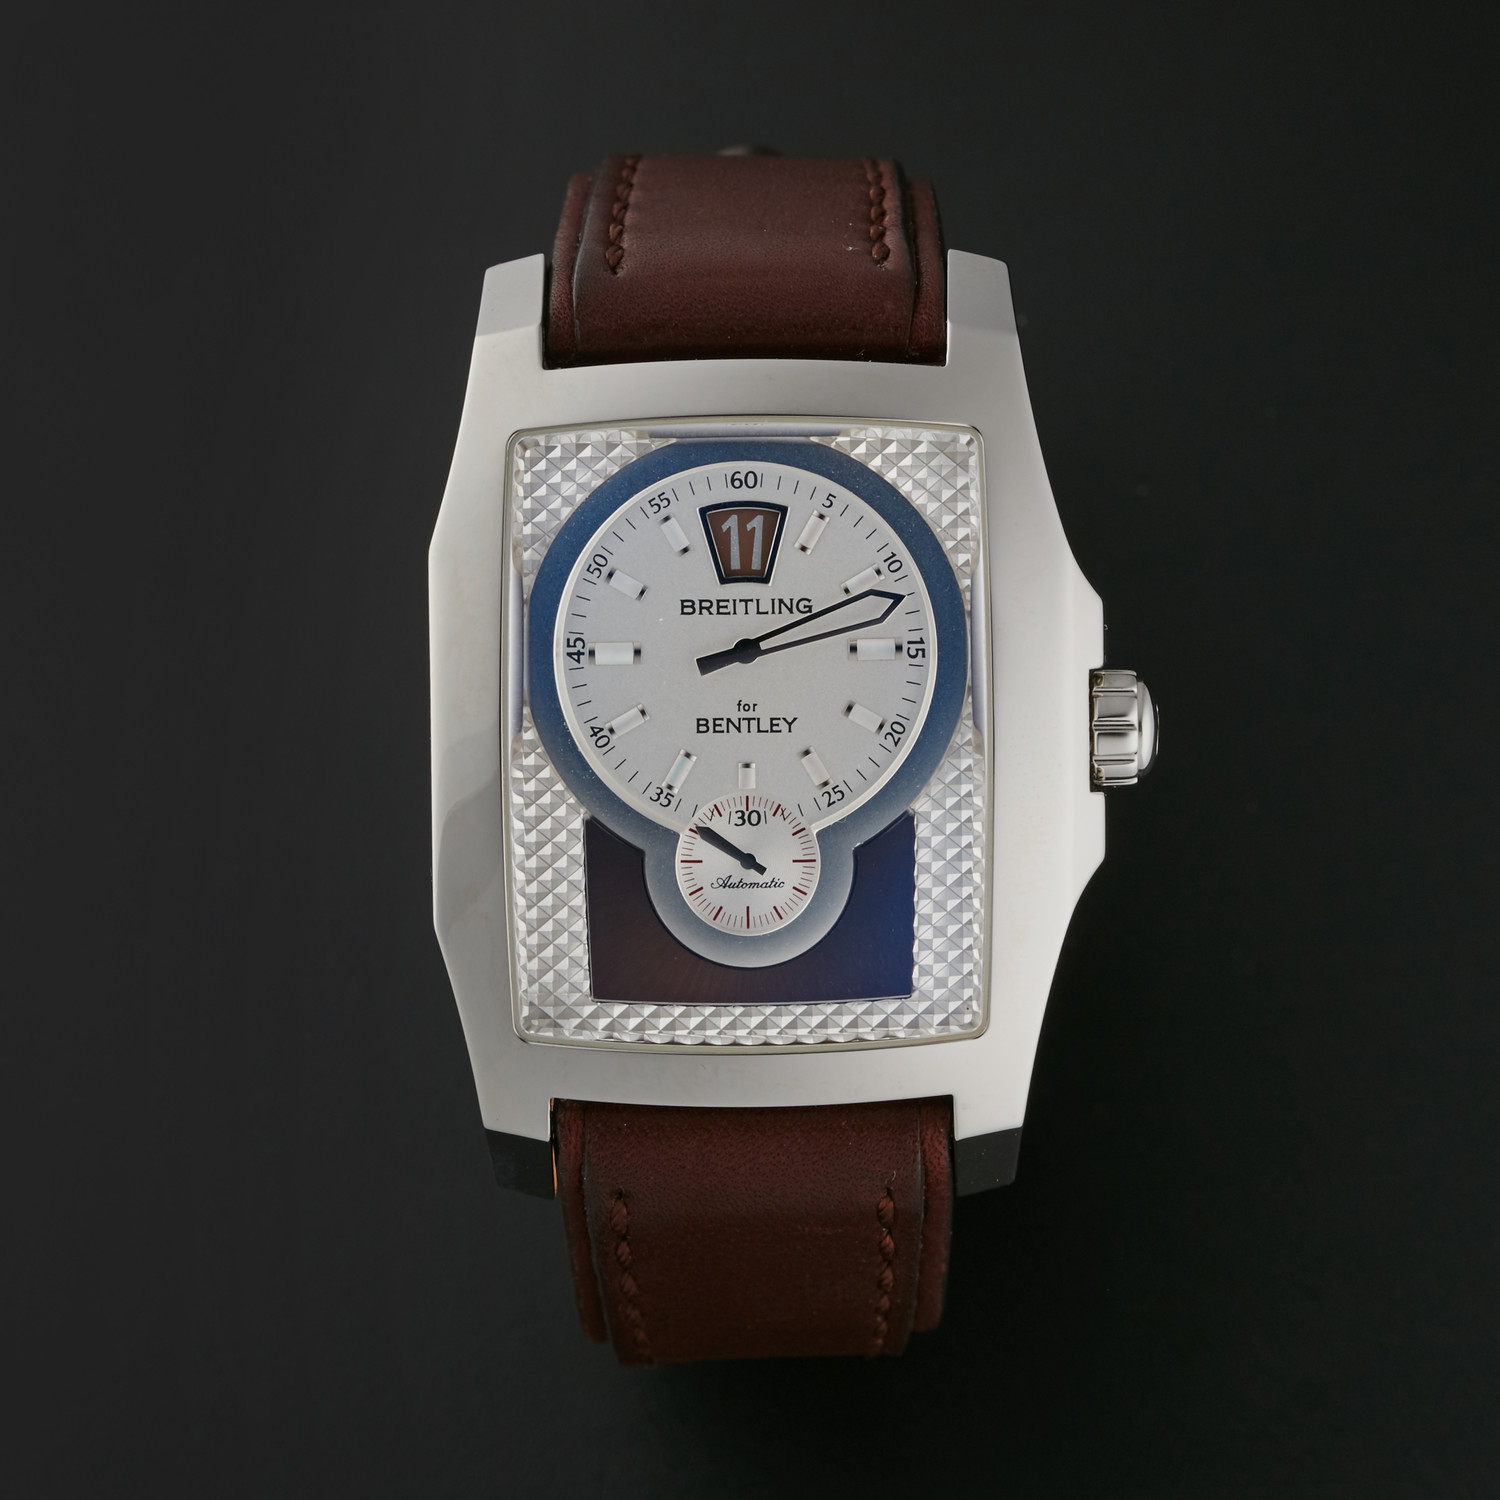 success in luxury watch positioning of breitling watches essay Meet the new third party in national politics: reality reality is the only party with an agenda consistent with what is actually happening in the world.